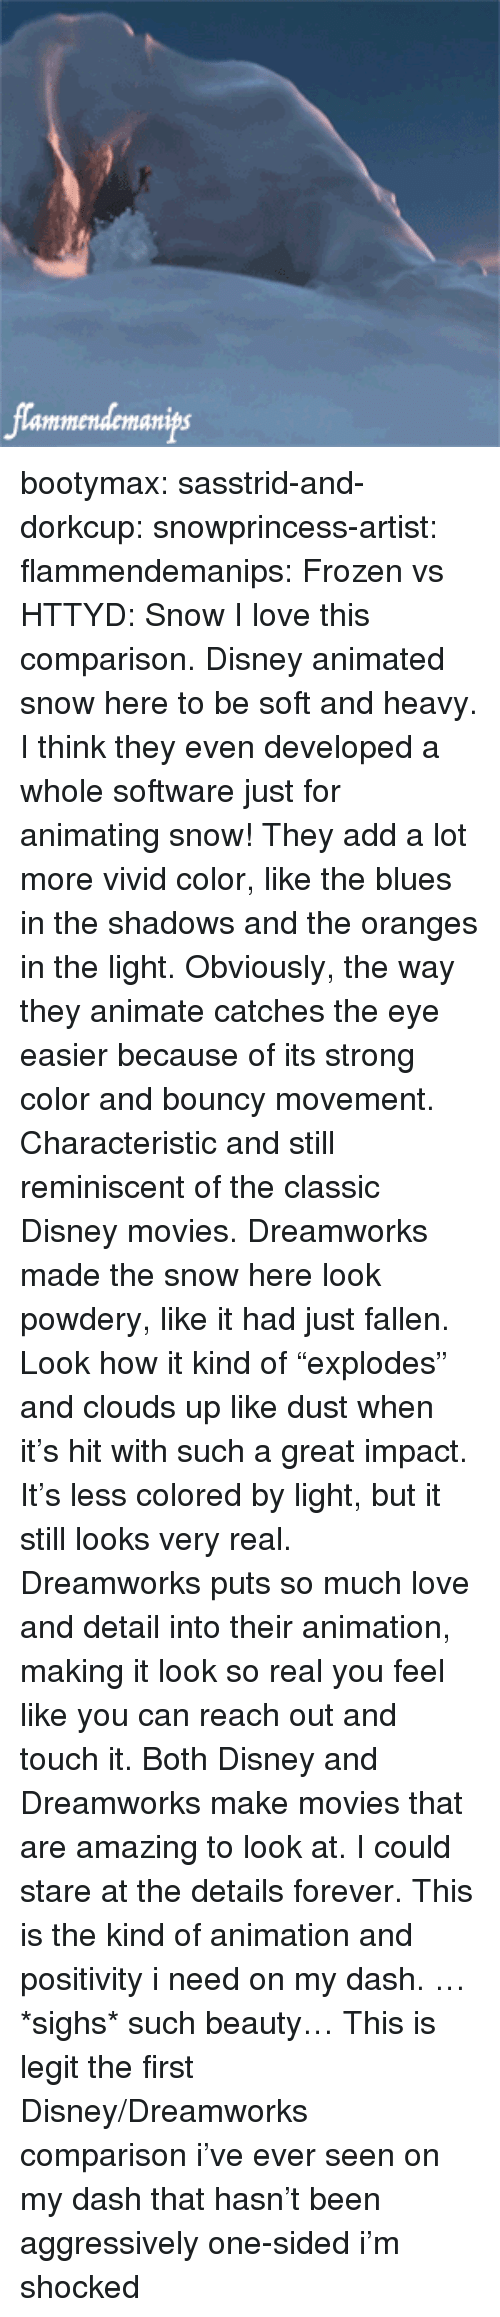 """animate: lammendemanips bootymax: sasstrid-and-dorkcup:  snowprincess-artist:  flammendemanips:   Frozen vs HTTYD: Snow   I love this comparison. Disney animated snow here to be soft and heavy. I think they even developed a whole software just for animating snow! They add a lot more vivid color, like the blues in the shadows and the oranges in the light. Obviously, the way they animate catches the eye easier because of its strong color and bouncy movement. Characteristic and still reminiscent of the classic Disney movies. Dreamworks made the snow here look powdery, like it had just fallen. Look how it kind of """"explodes"""" and clouds up like dust when  it's hit with such a great impact. It's less colored by light, but it still looks very real. Dreamworks puts so much love and detail into their animation, making it look so real you feel like you can reach out and touch it.  Both Disney and Dreamworks make movies that are amazing to look at. I could stare at the details forever.  This is the kind of animation and positivity i need on my dash. …*sighs* such beauty…   This is legit the first Disney/Dreamworks comparison i've ever seen on my dash that hasn't been aggressively one-sided i'm shocked"""